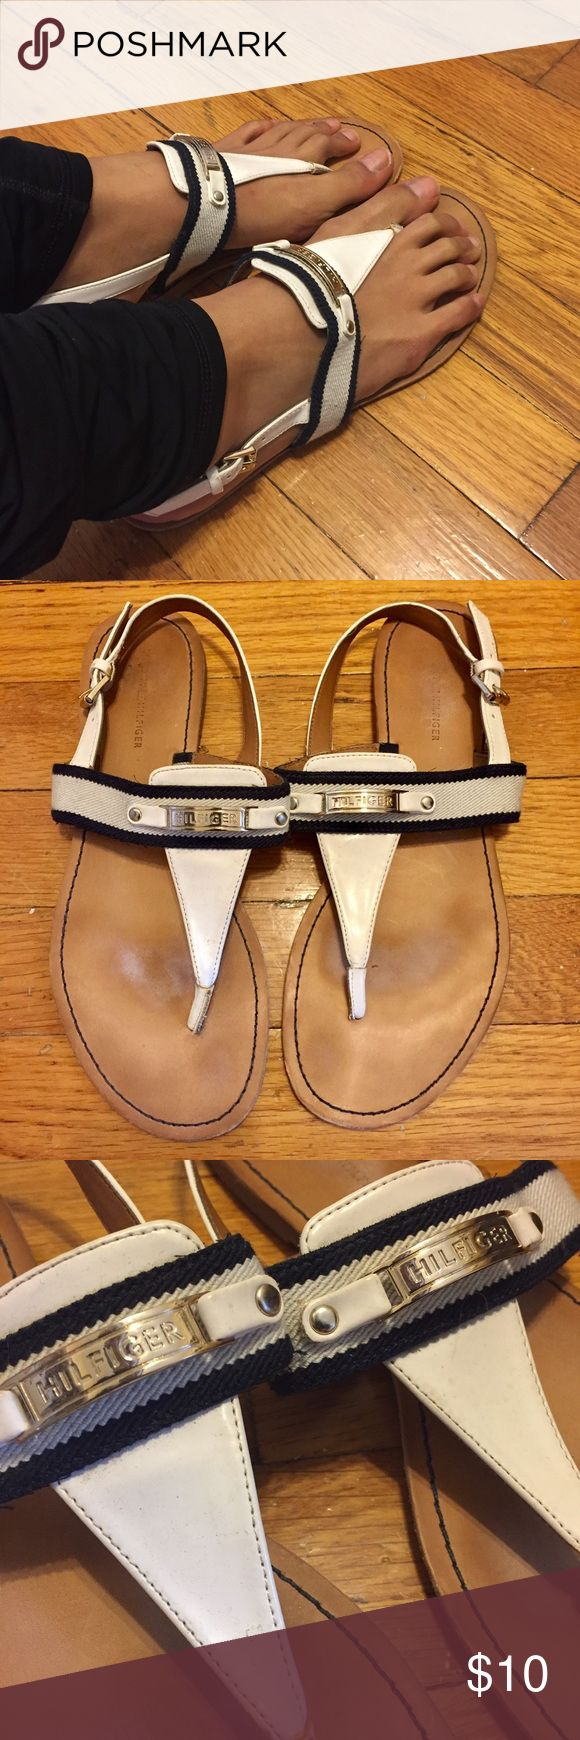 Tommy Hilfiger Nautical Sandals Navy and white nautical sandals. Adjustable straps. Some signs of wear (see photos) but still in great condition. Bundle to save more! Tommy Hilfiger Shoes Sandals